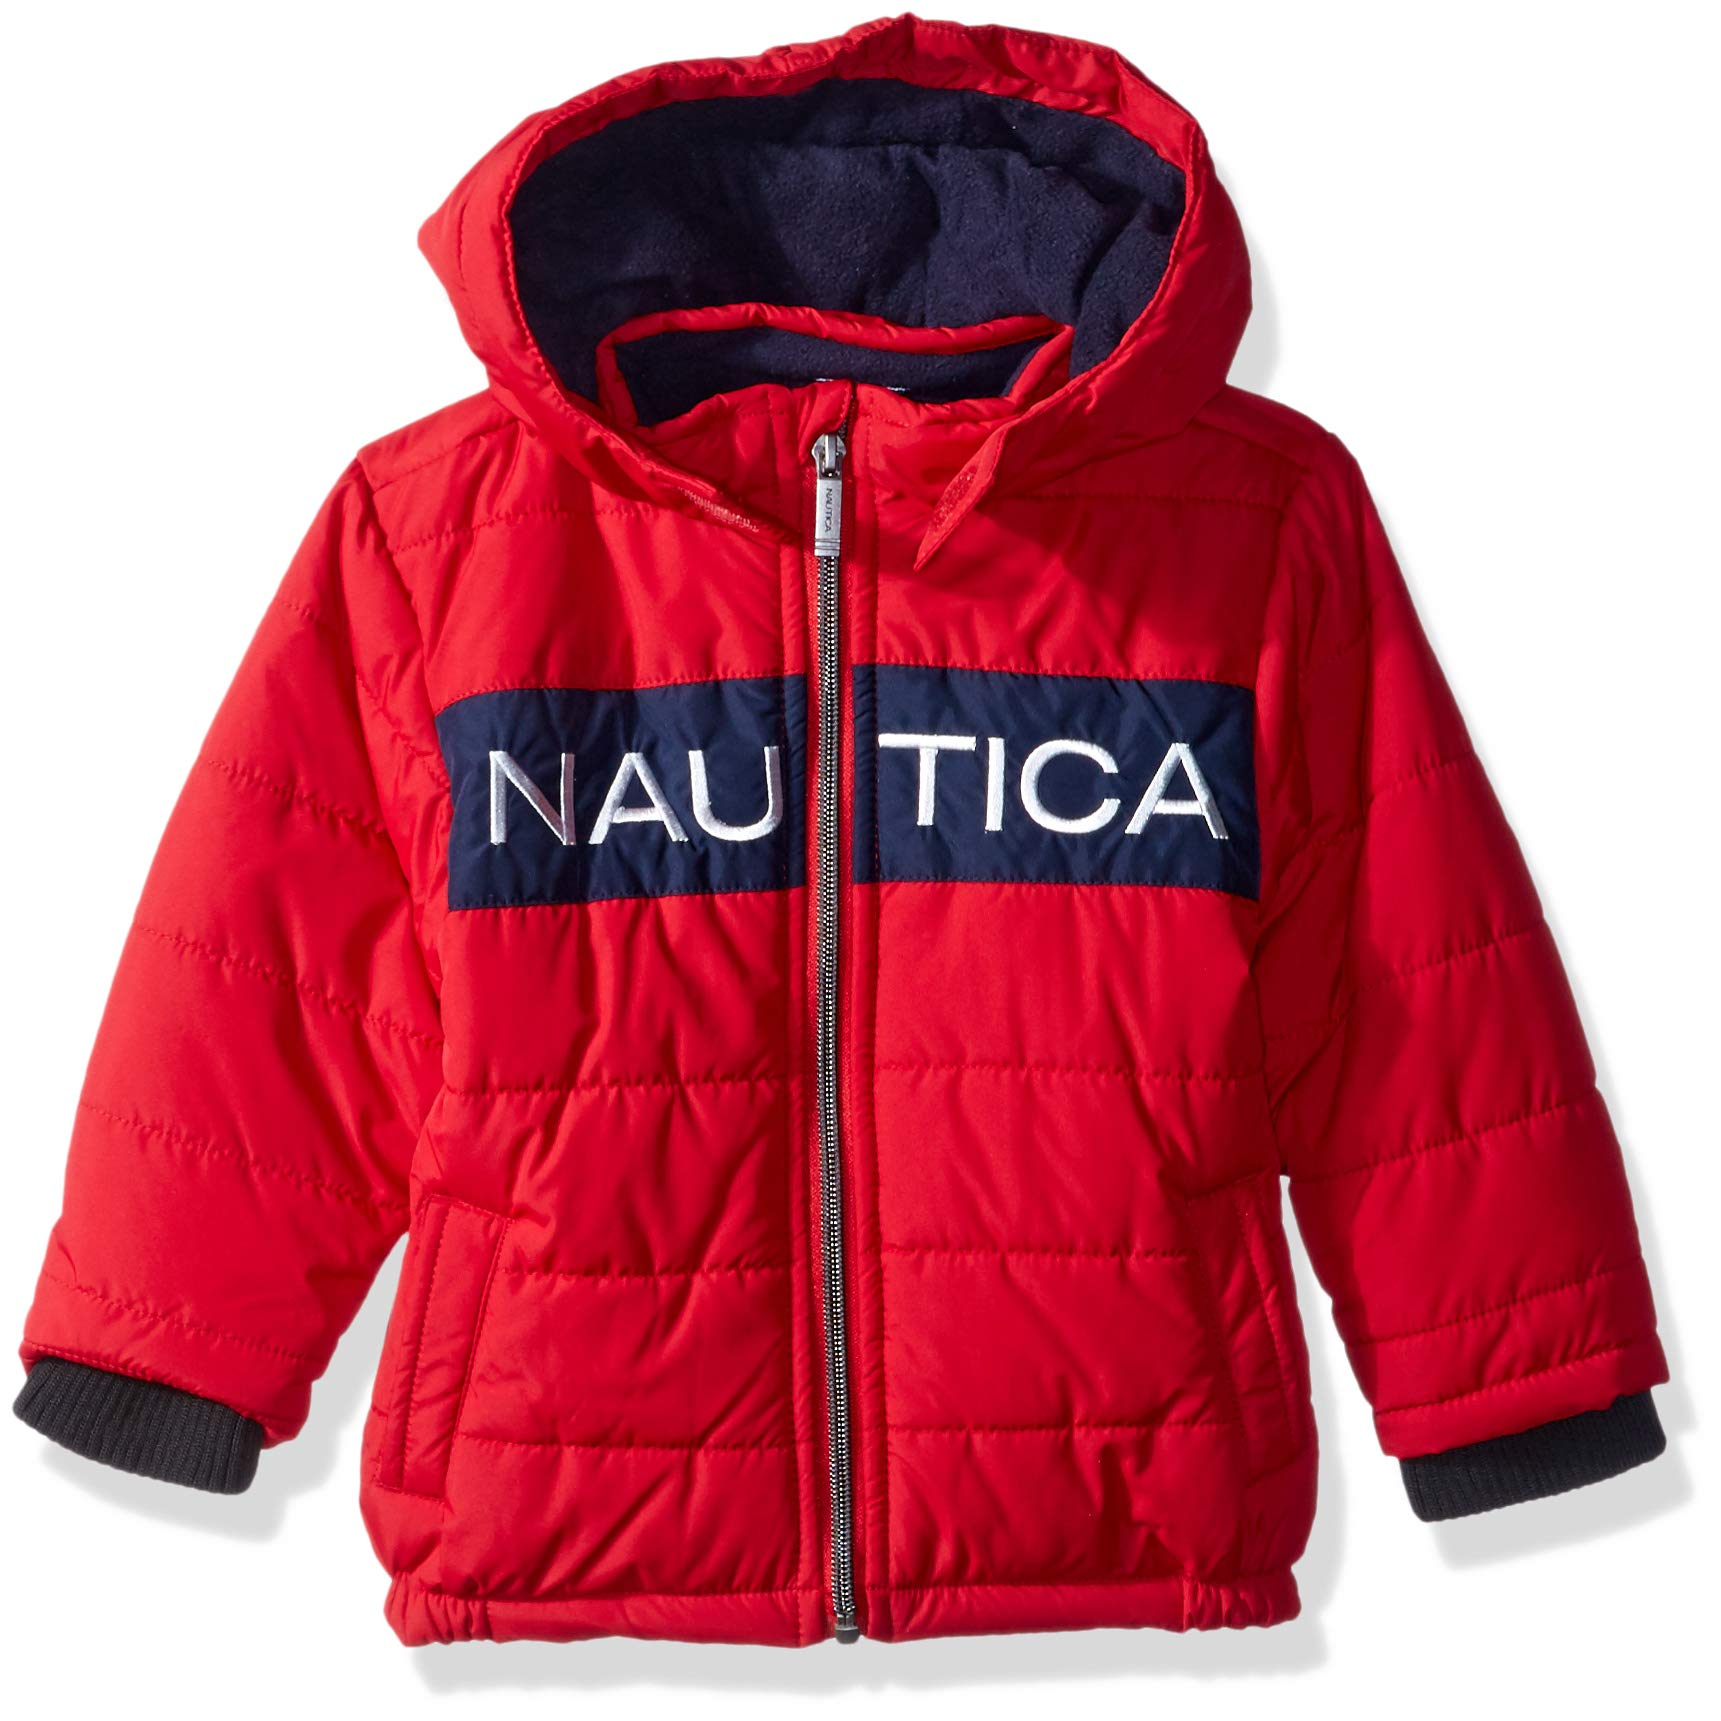 Nautica Baby Boys Signature Puffer Jacket with Storm Cuffs, Arthur Red, 24 Months by Nautica